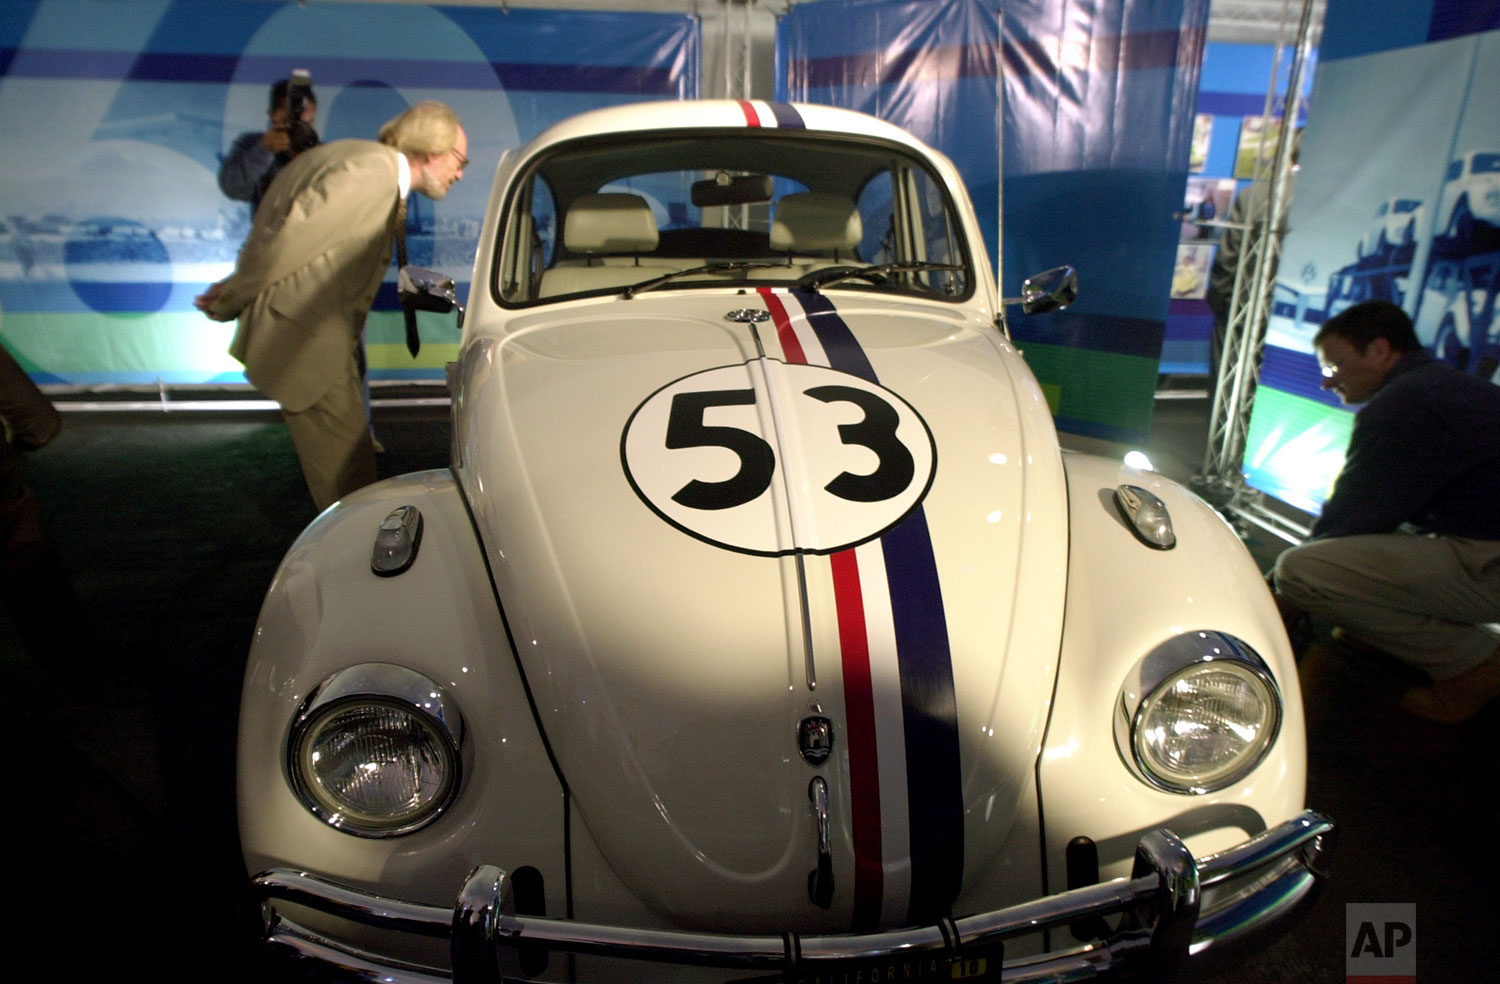 The replica of Herbie the Love Bug, the star of the wacky 1970s movie of the same name, is exhibited during the ceremony of the Volkswagen sedan 'last edition,' July 10, 2003, at the Puebla plant, in Mexico. (AP Photo/Jose Luis Magana)